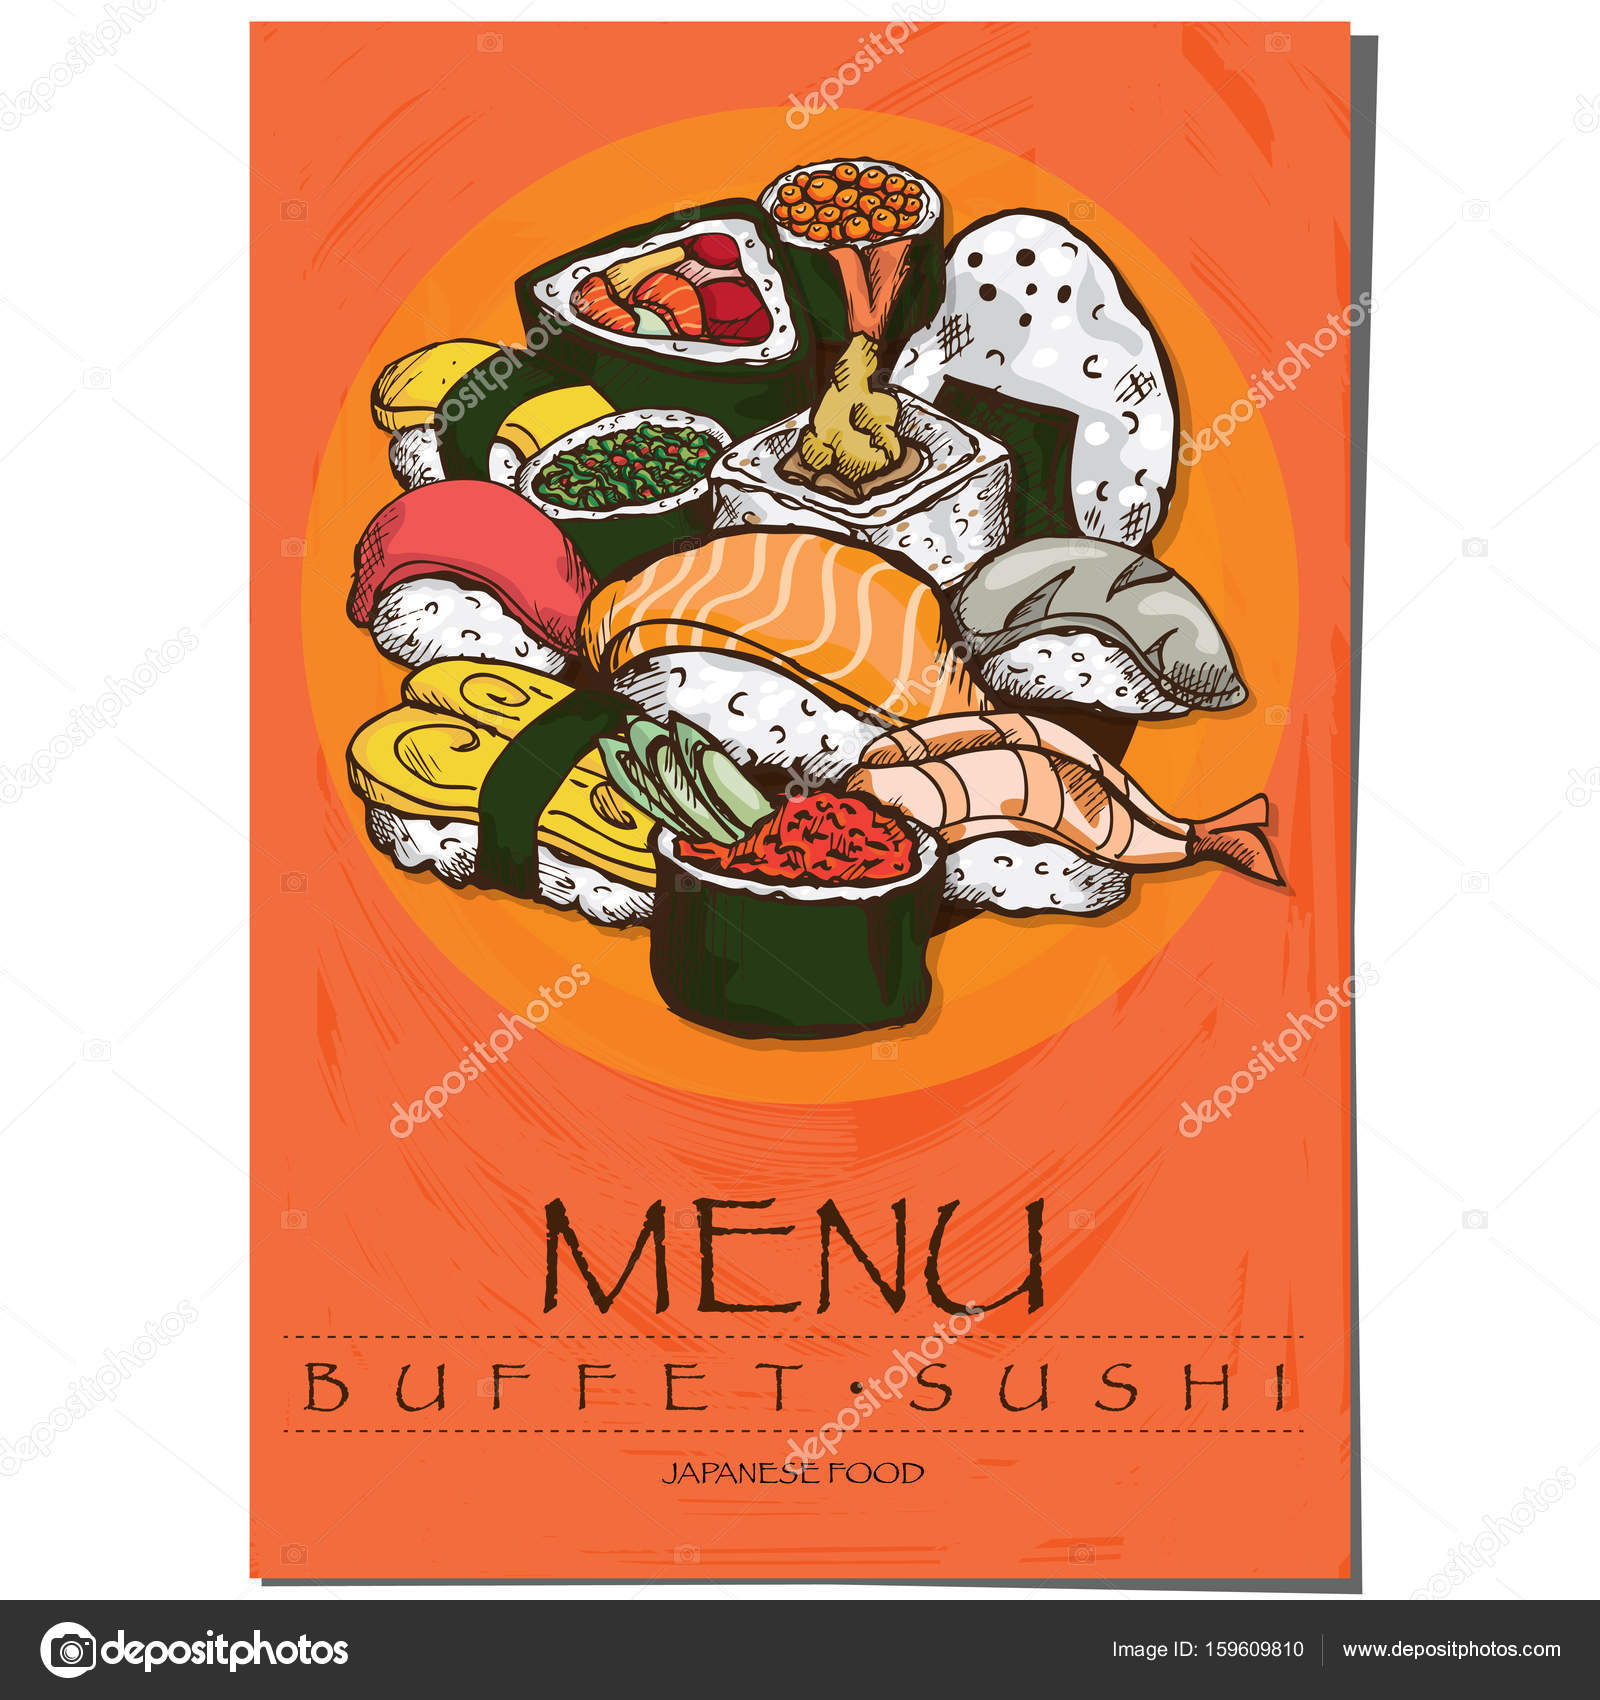 Menu Japanese Food Sushi Restaurant Template Design Hand Drawing Graphic Stock Vector C Foontntd 159609810